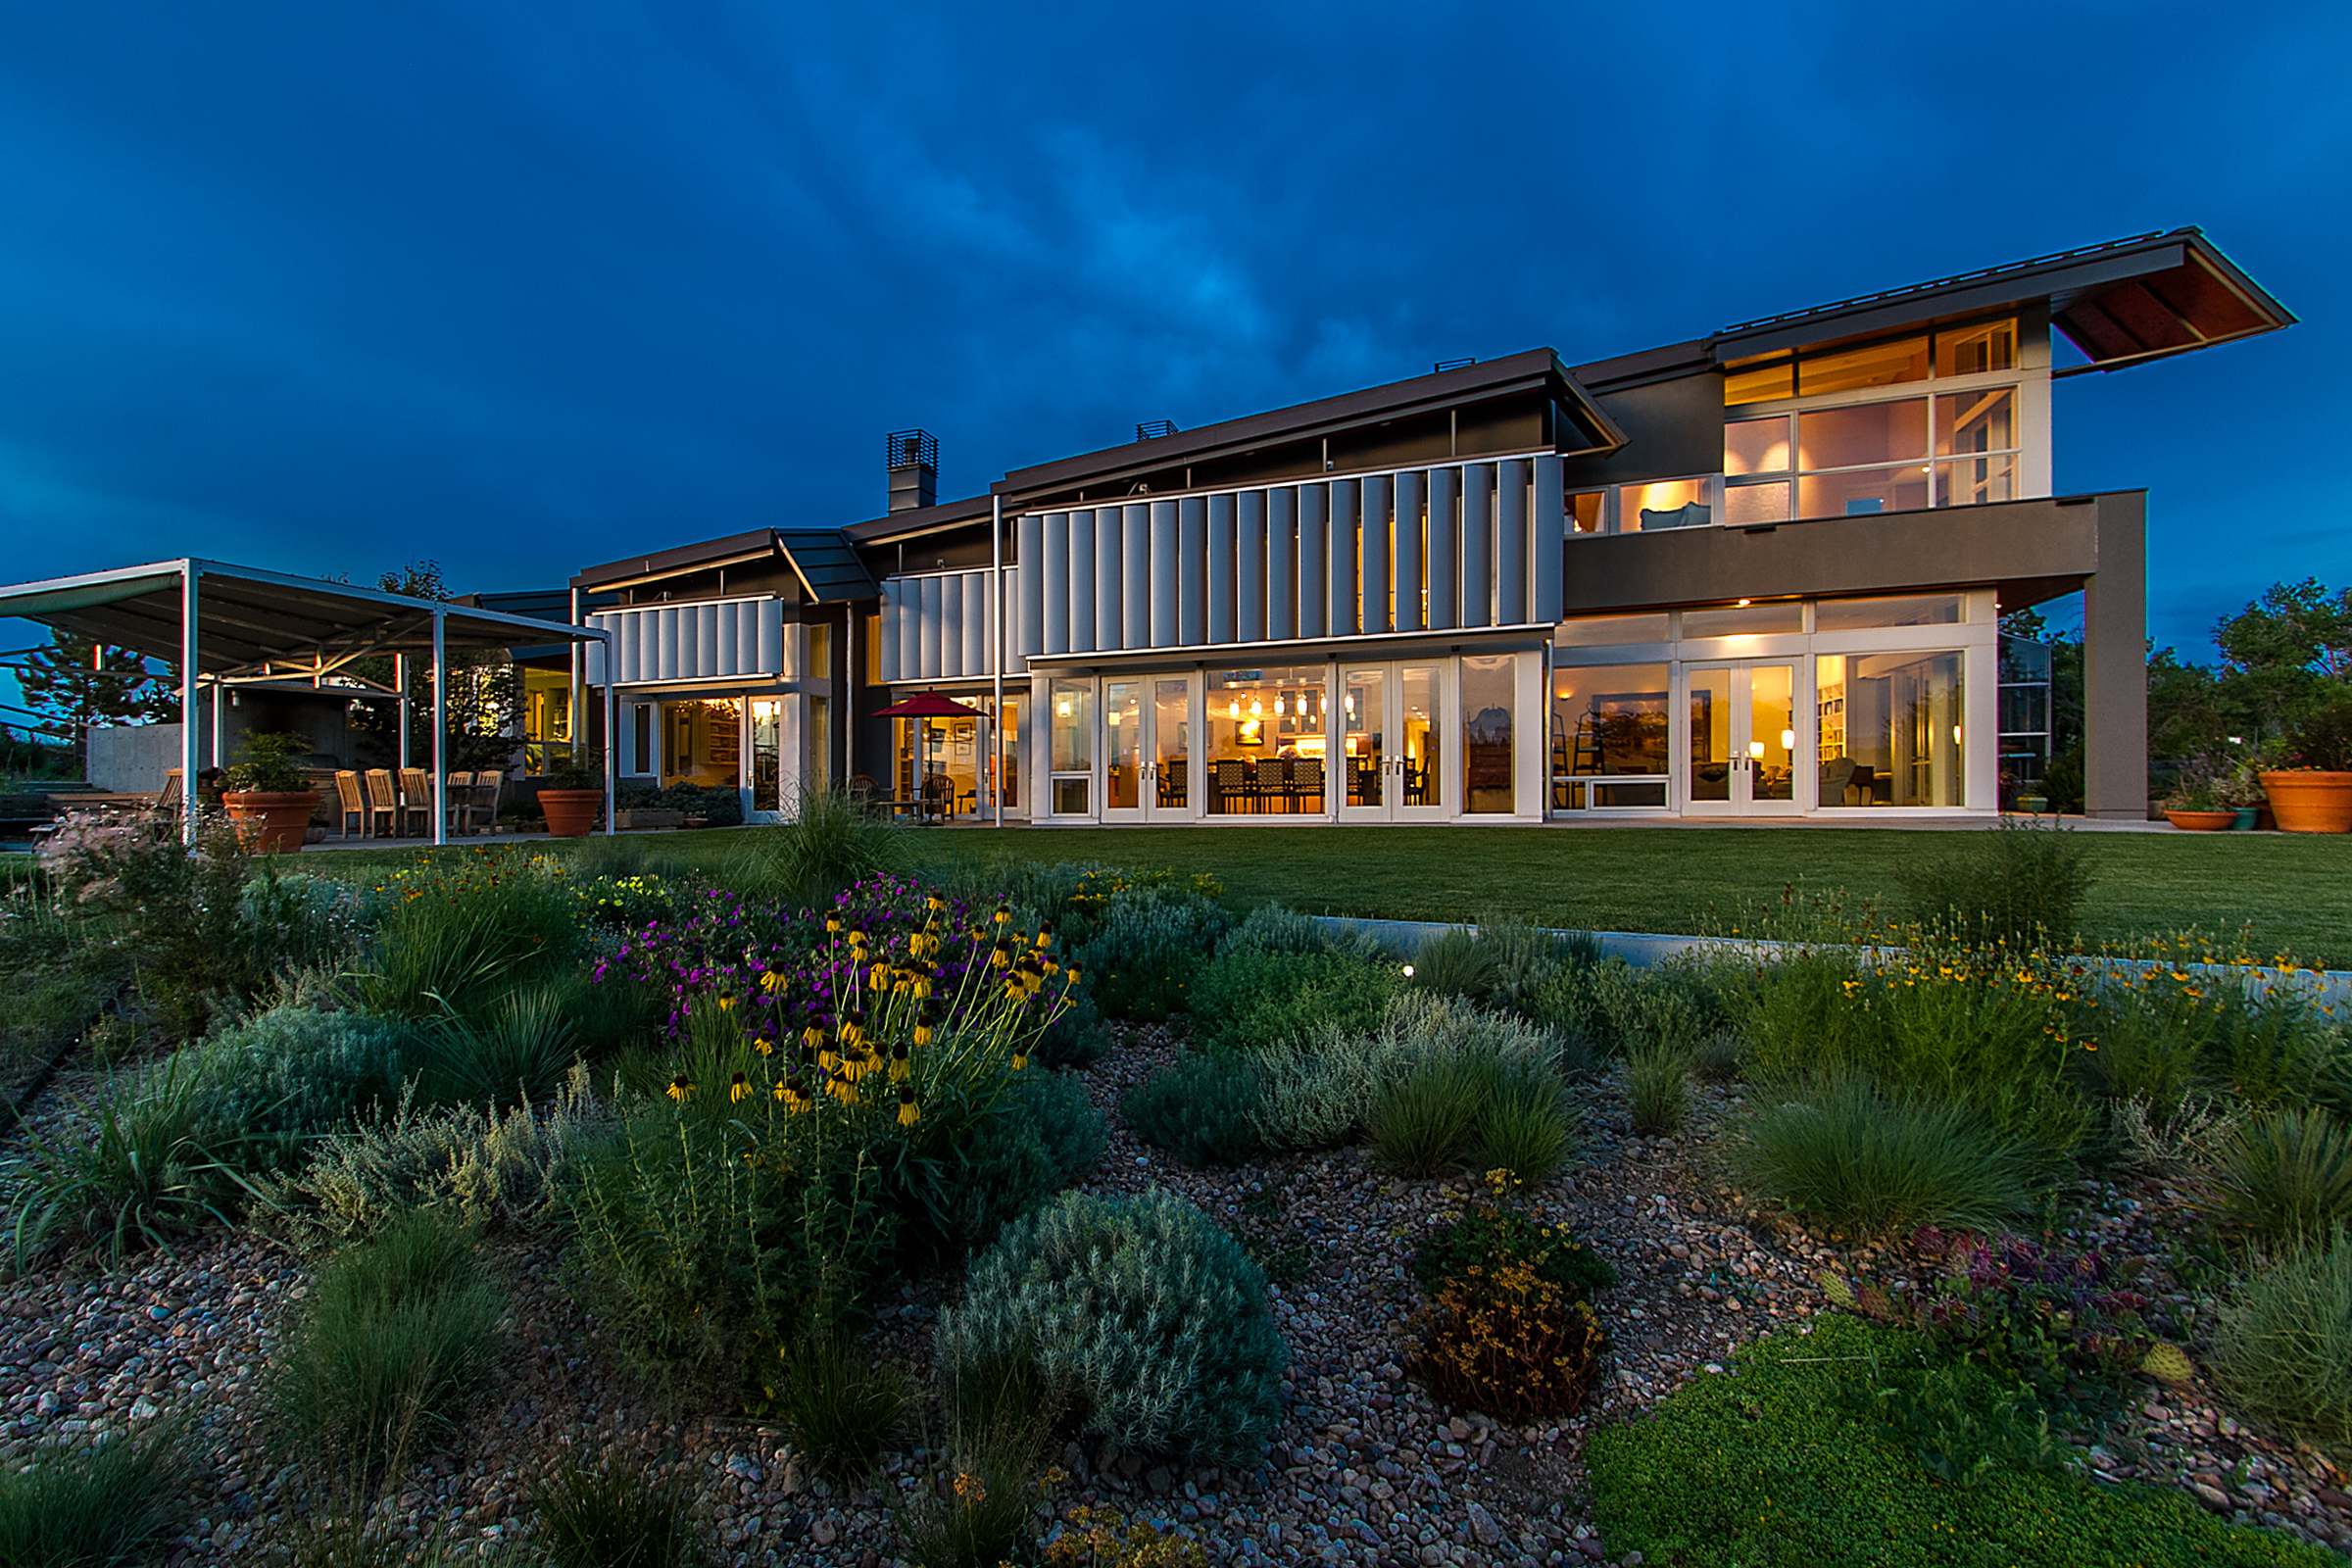 Pictured: 5545 South Madison Way, Greenwood Village, CO. Listed by LIV Sotheby's International Realty for $4,75M.